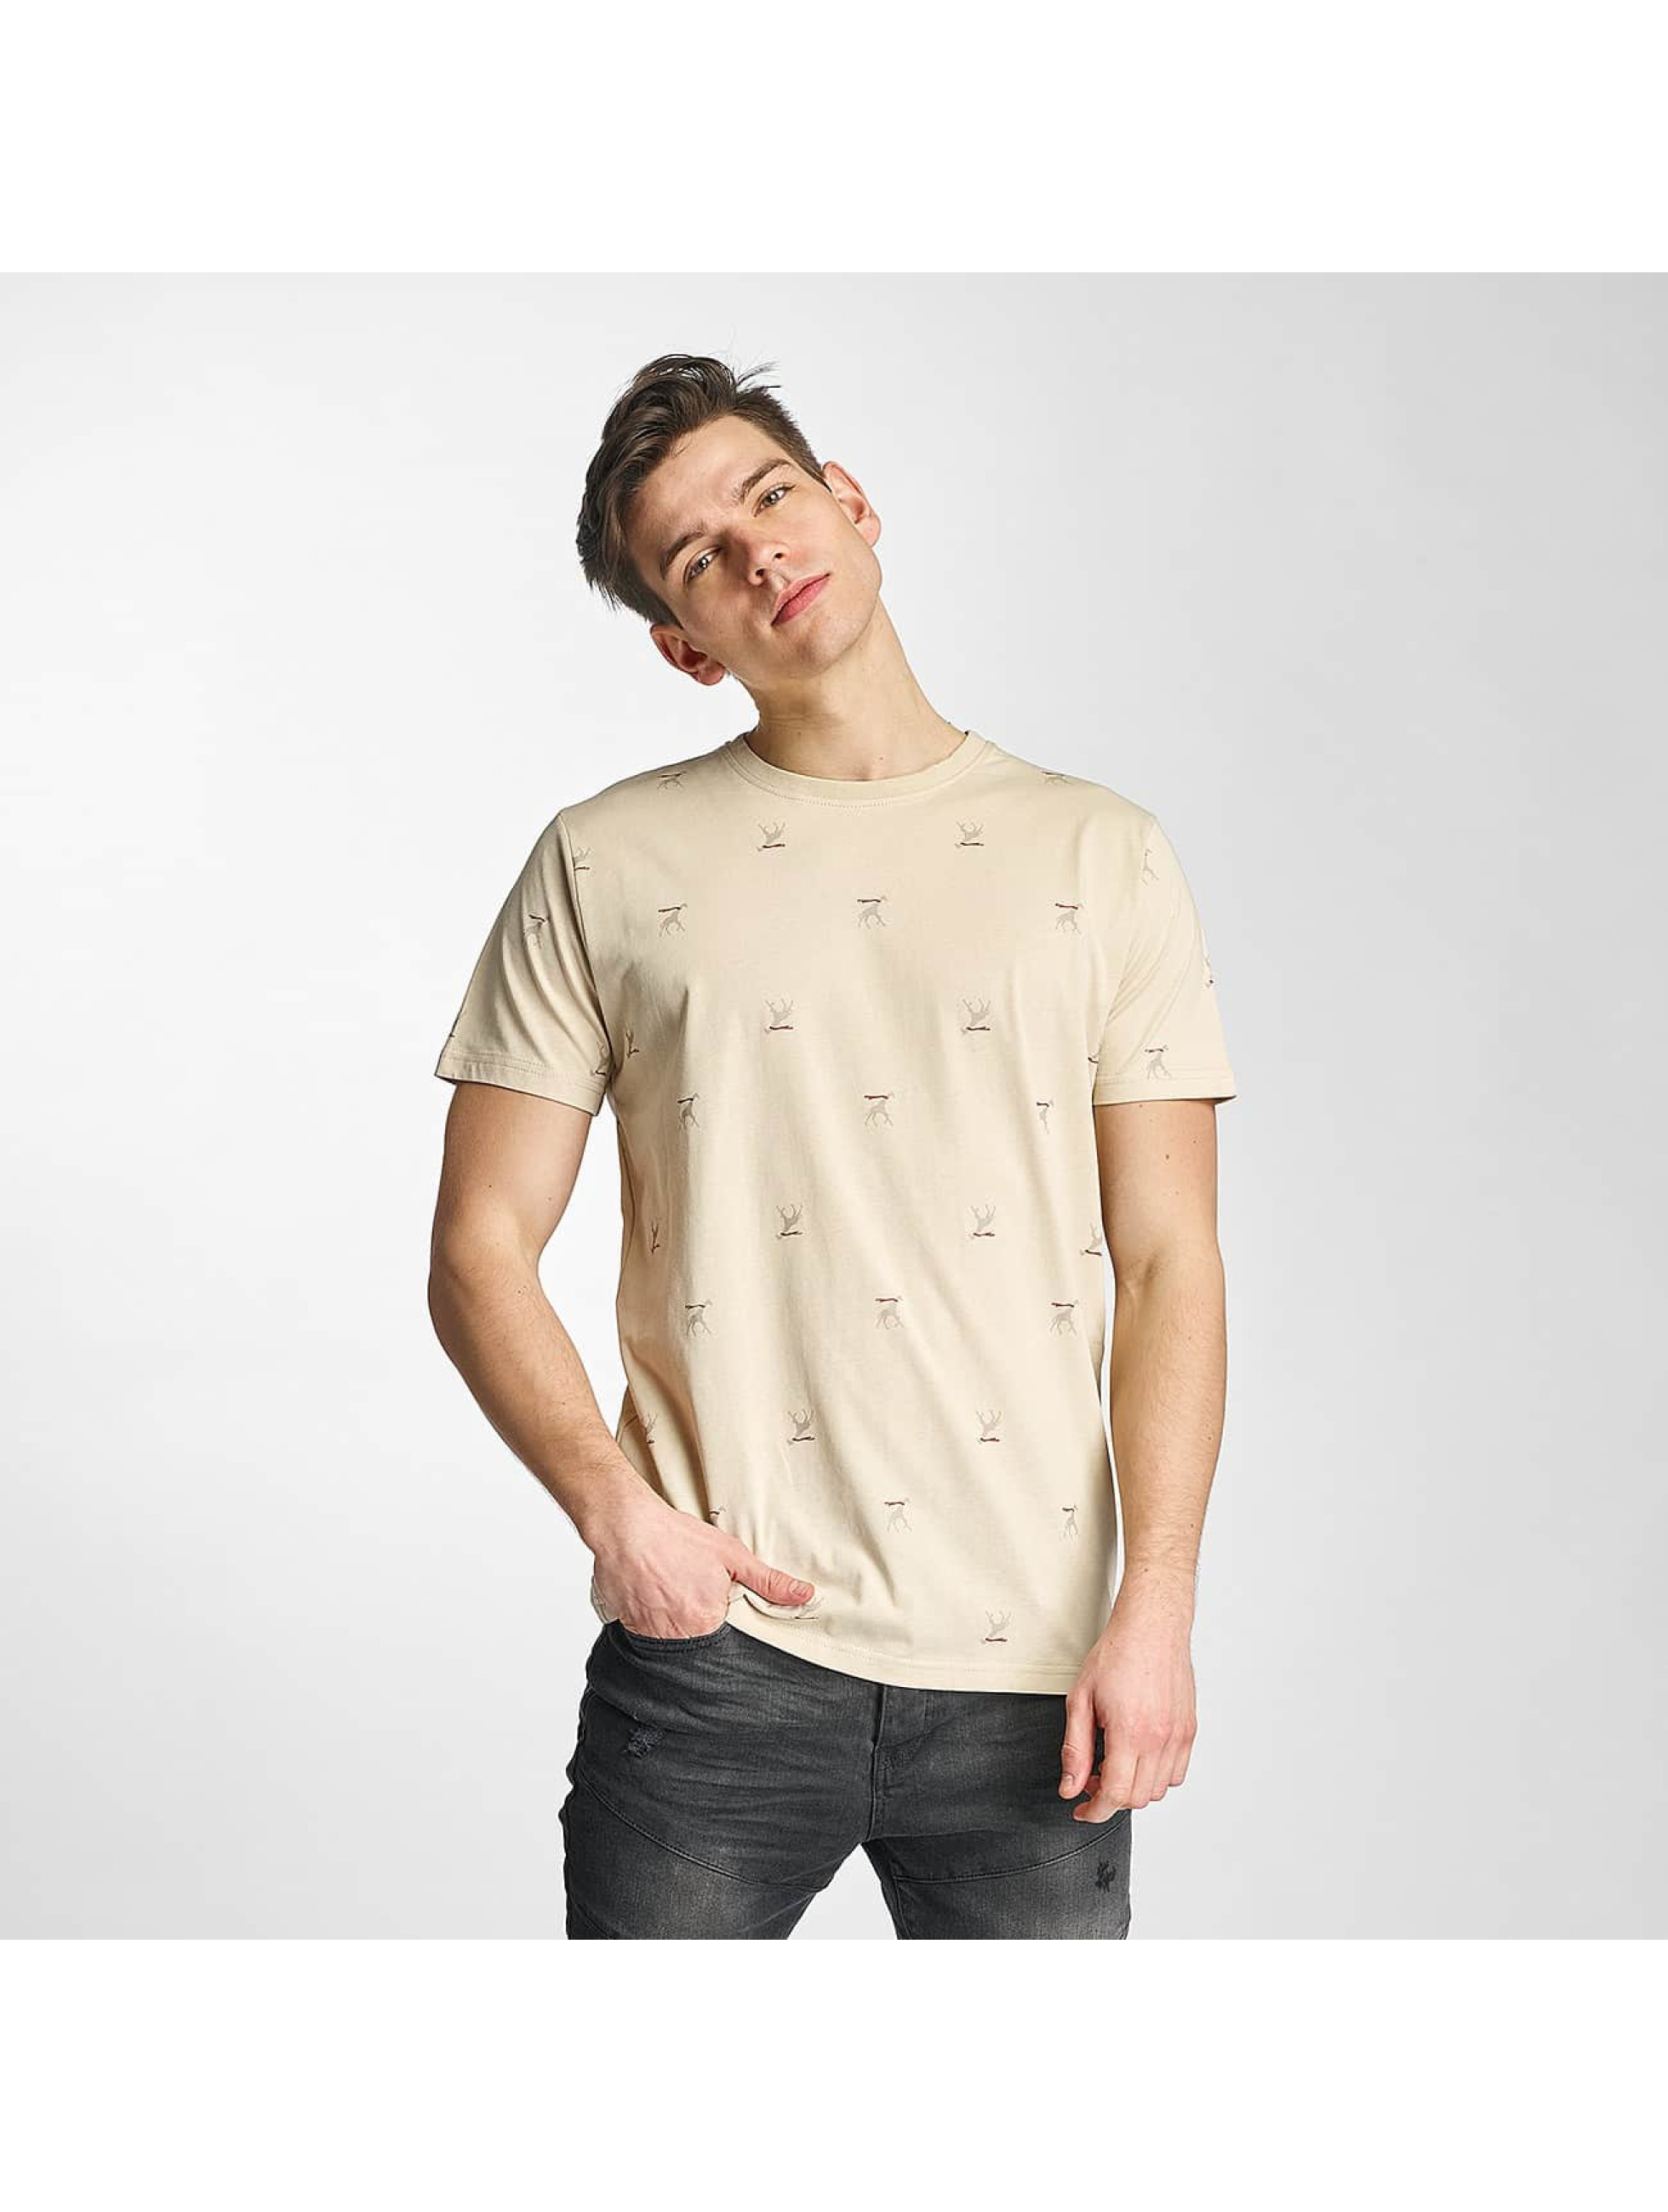 Cazzy Clang Männer T-Shirt Saint Barth in beige